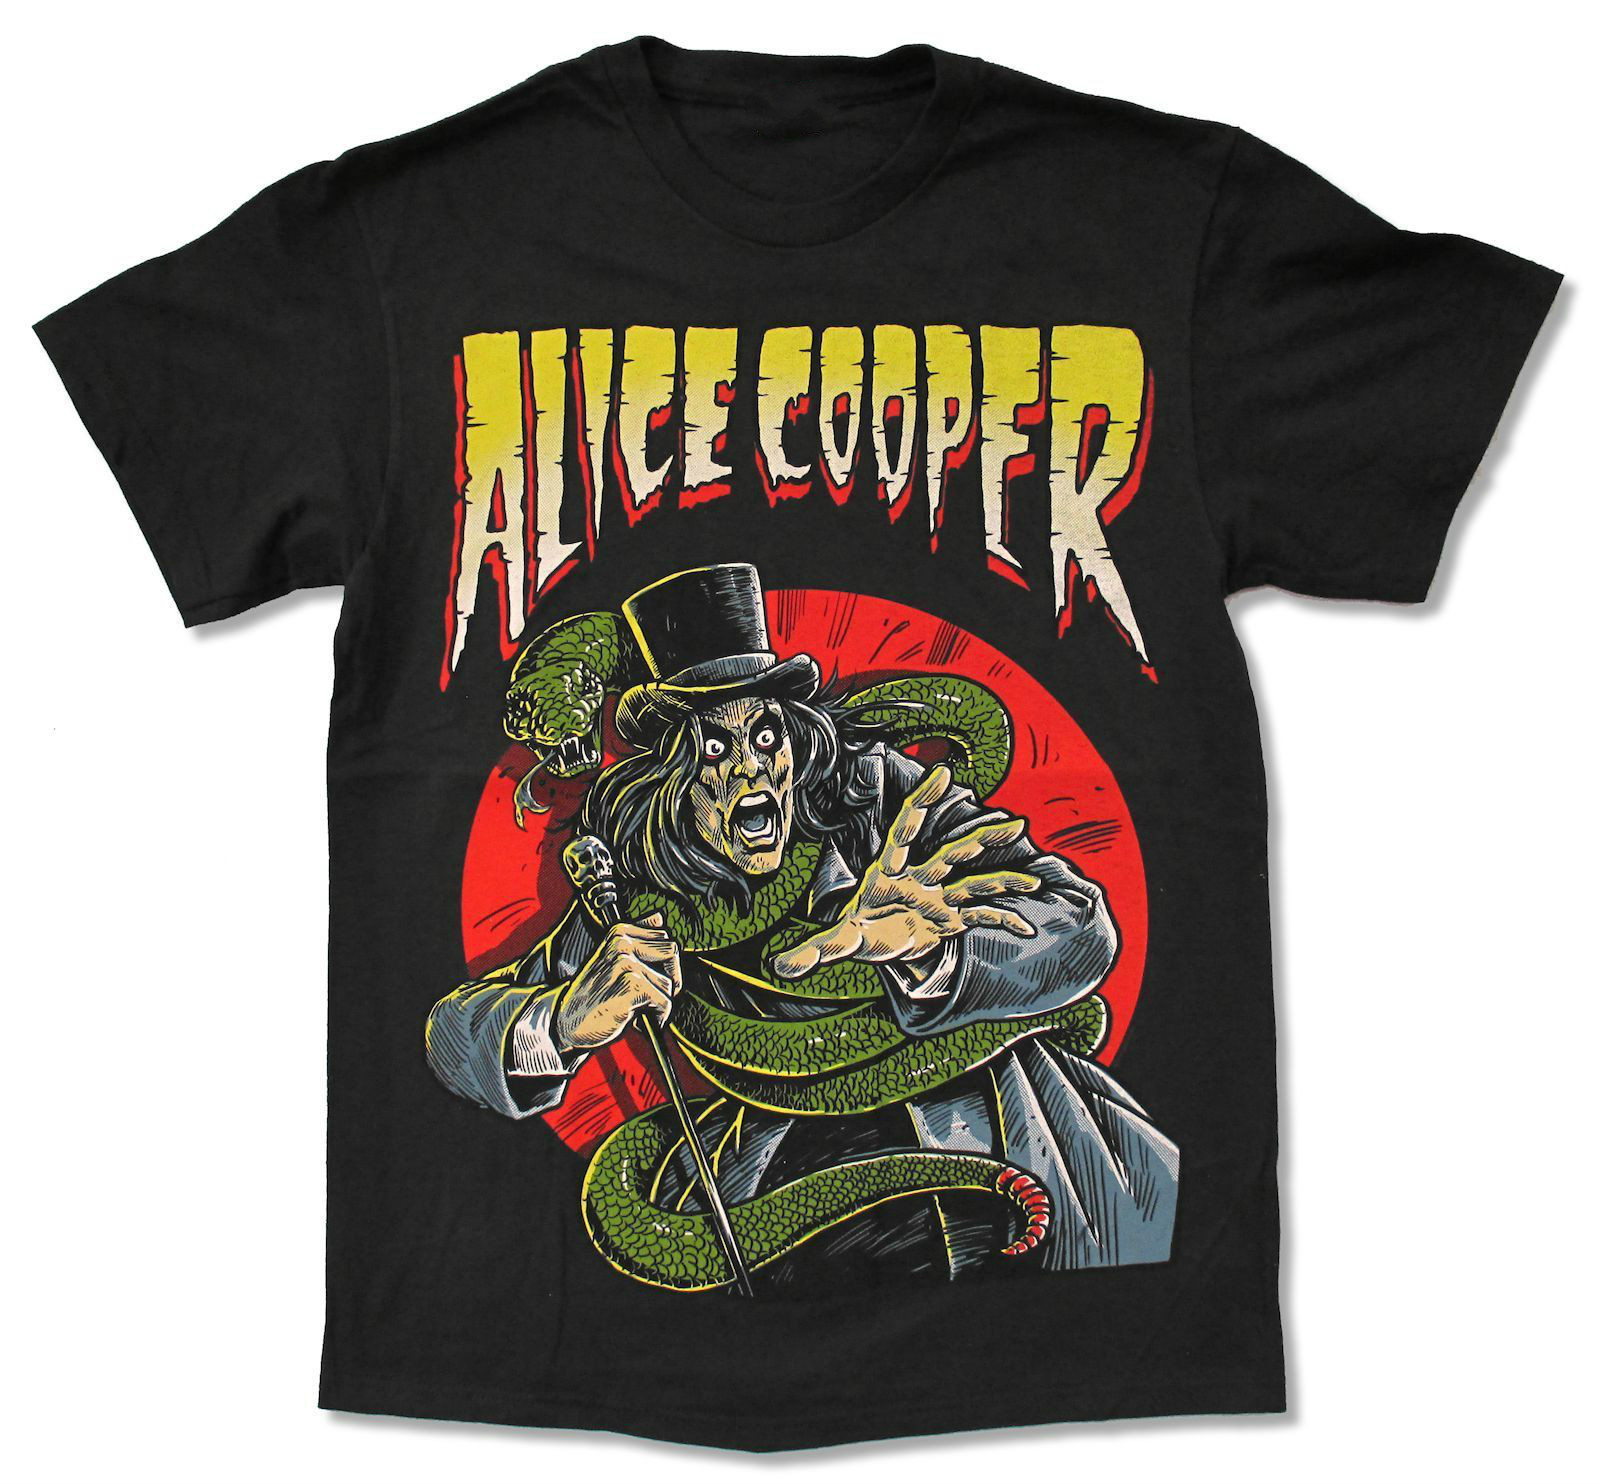 Shirt design book - Alice Cooper Comic Book Black T Shirt New Official Music Adult Awesome T